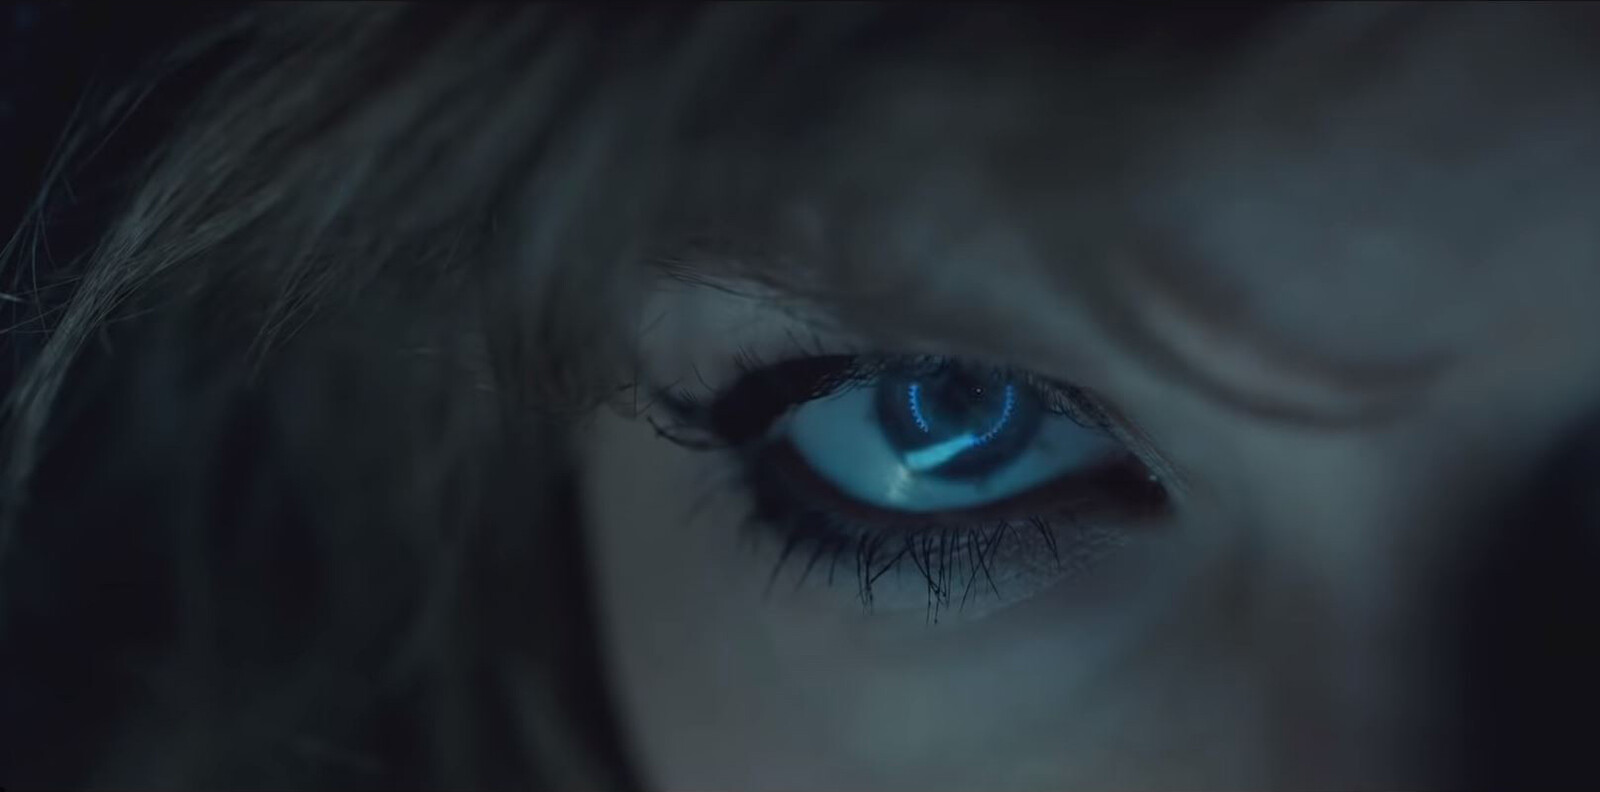 .. Ready for it? - Taylor Swift Music Video